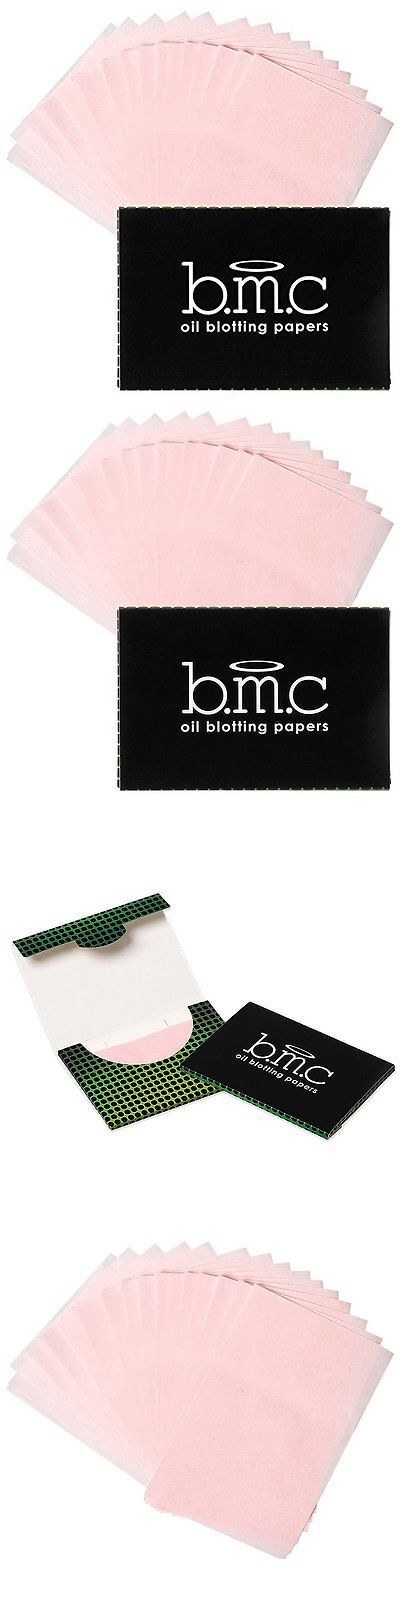 Blotting Paper: Bmc 15 Packs Beauty Makeup Face Skin Care Product Oil Control Absorbing Blotting BUY IT NOW ONLY: $33.47